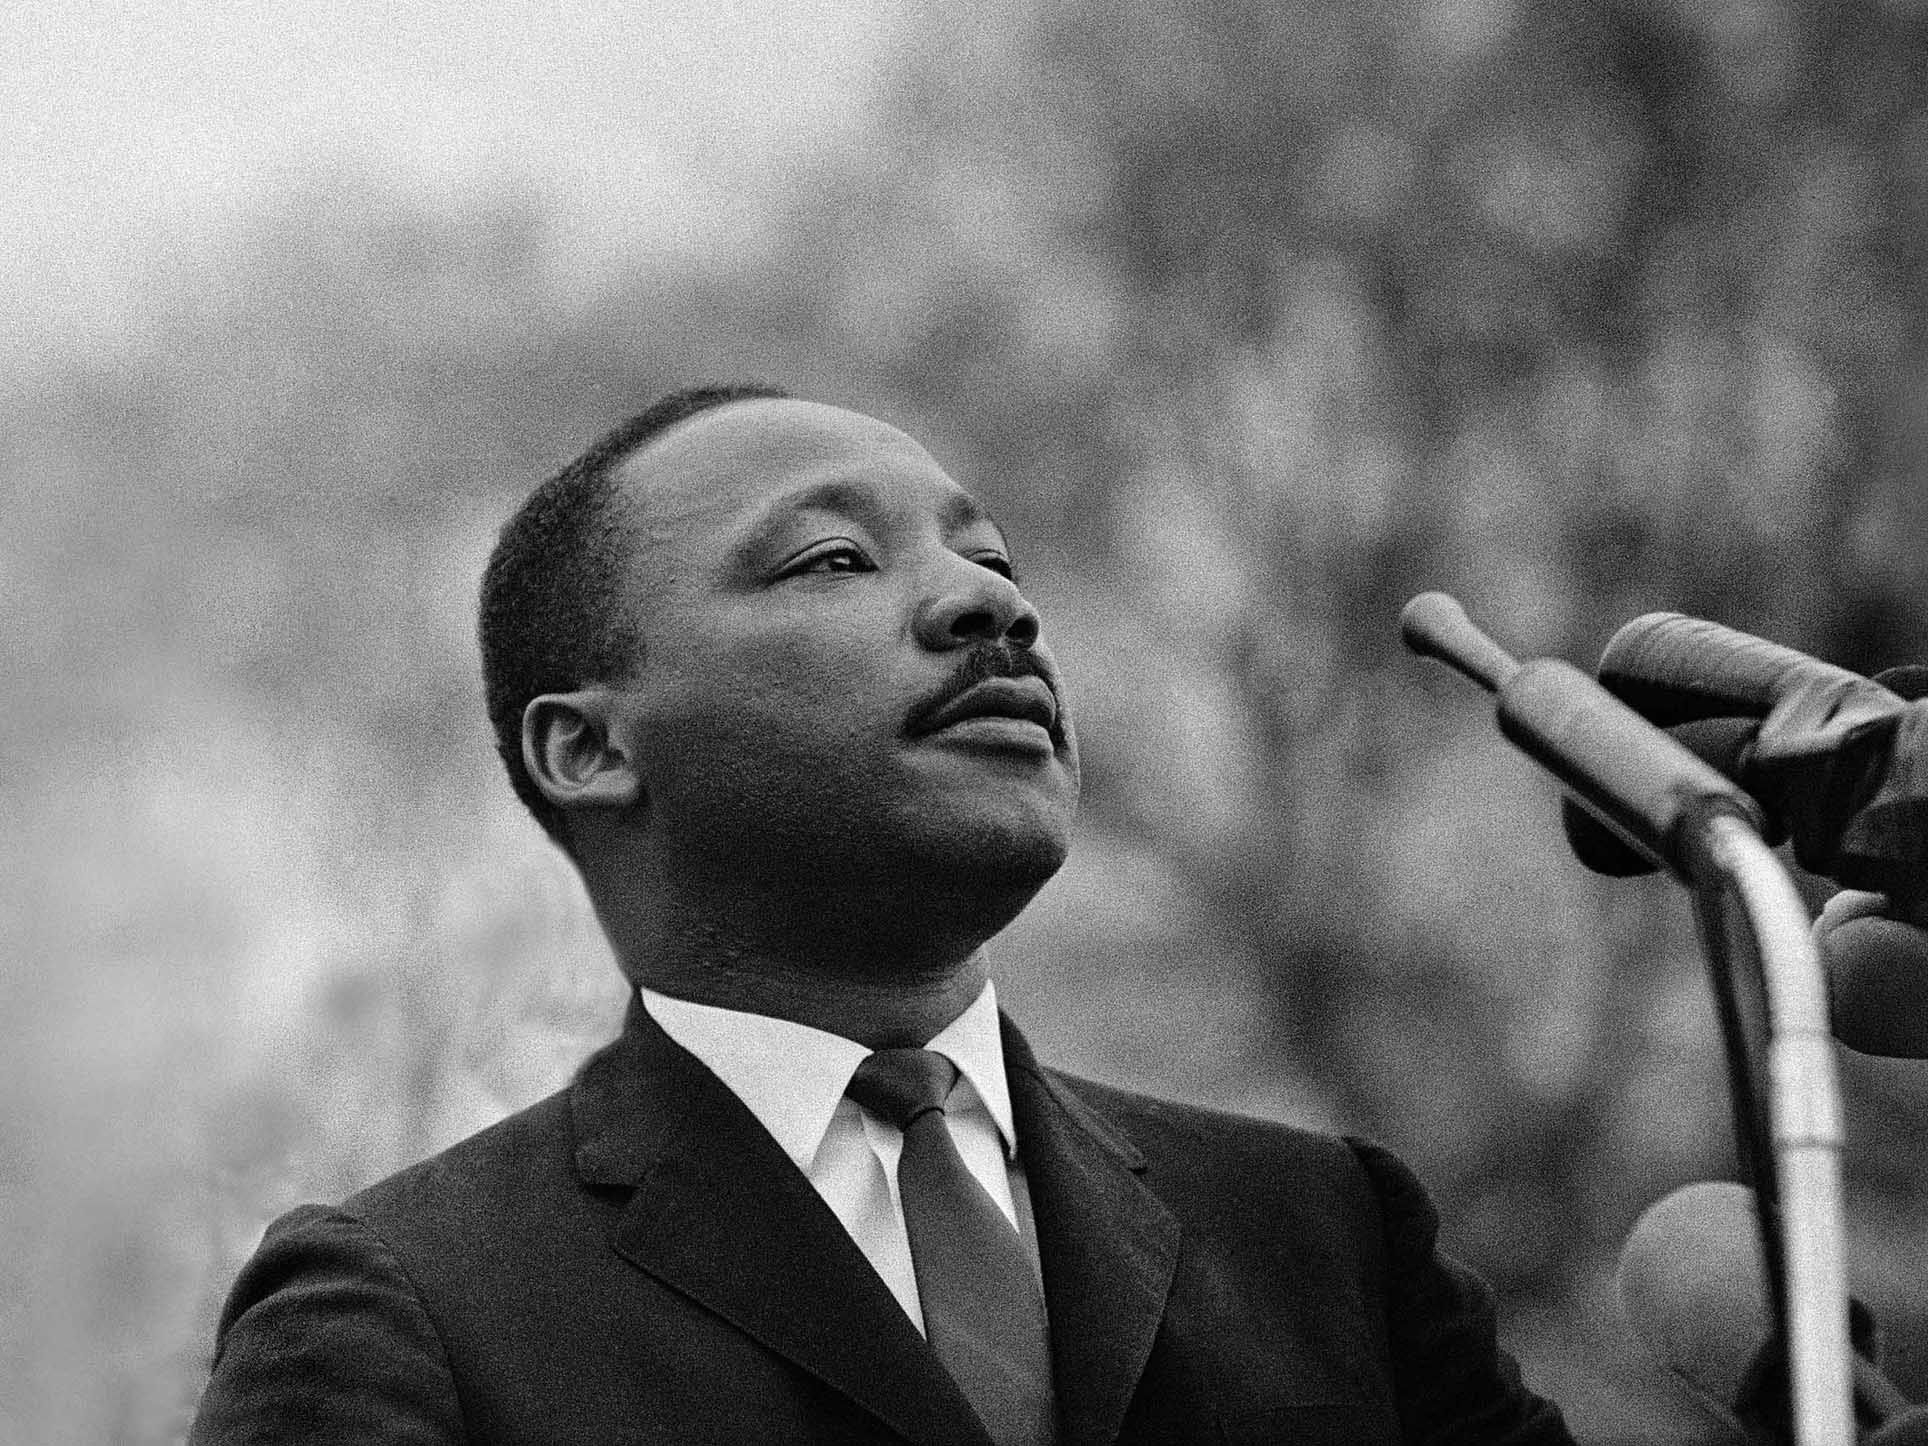 Commemorate the Life of Dr. Martin Luther King Jr.